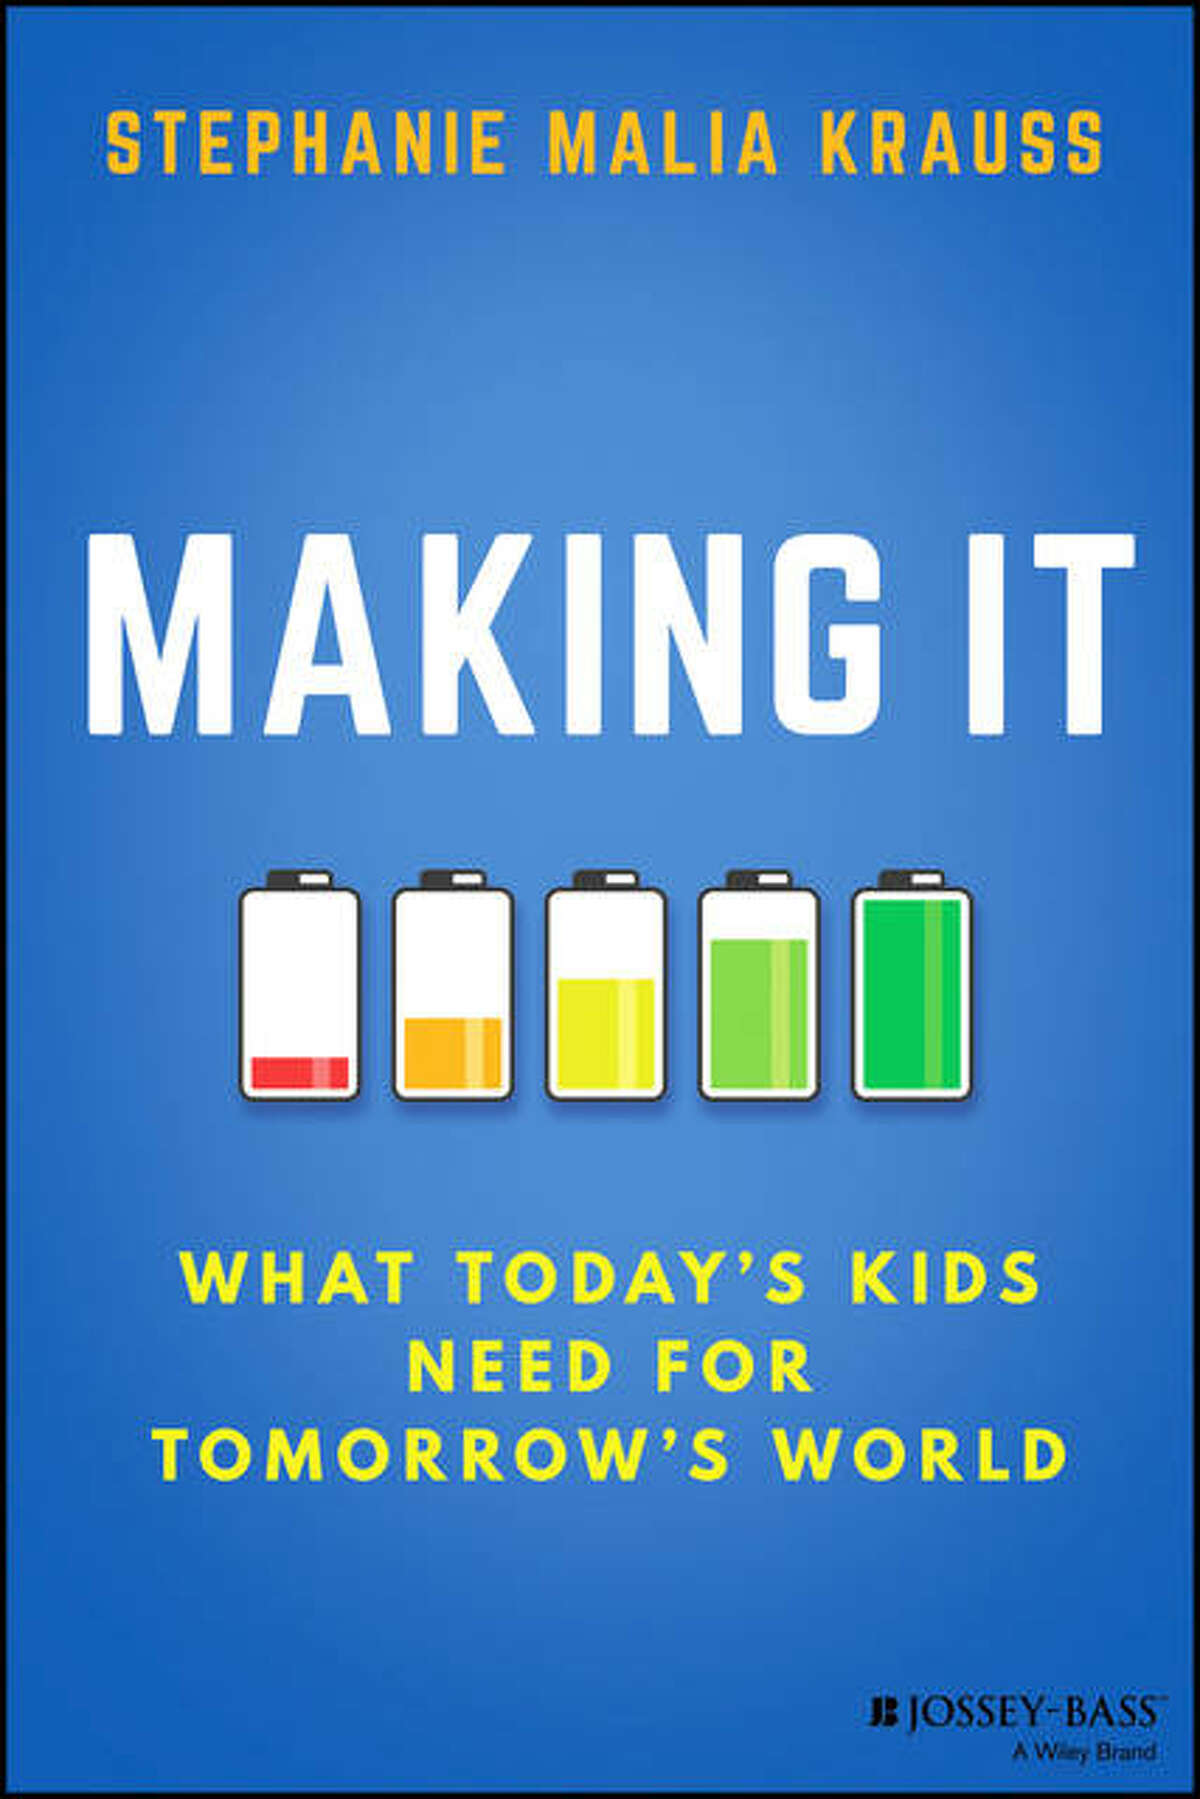 """""""Making It: What Today's Kids Need for Tomorrow's World,"""" by Stephanie Malia Krauss, of Edwardsville, will be available on the national circuit via all online providers and at big box stores. The book can also be pre-ordered at www.bookshop.org."""